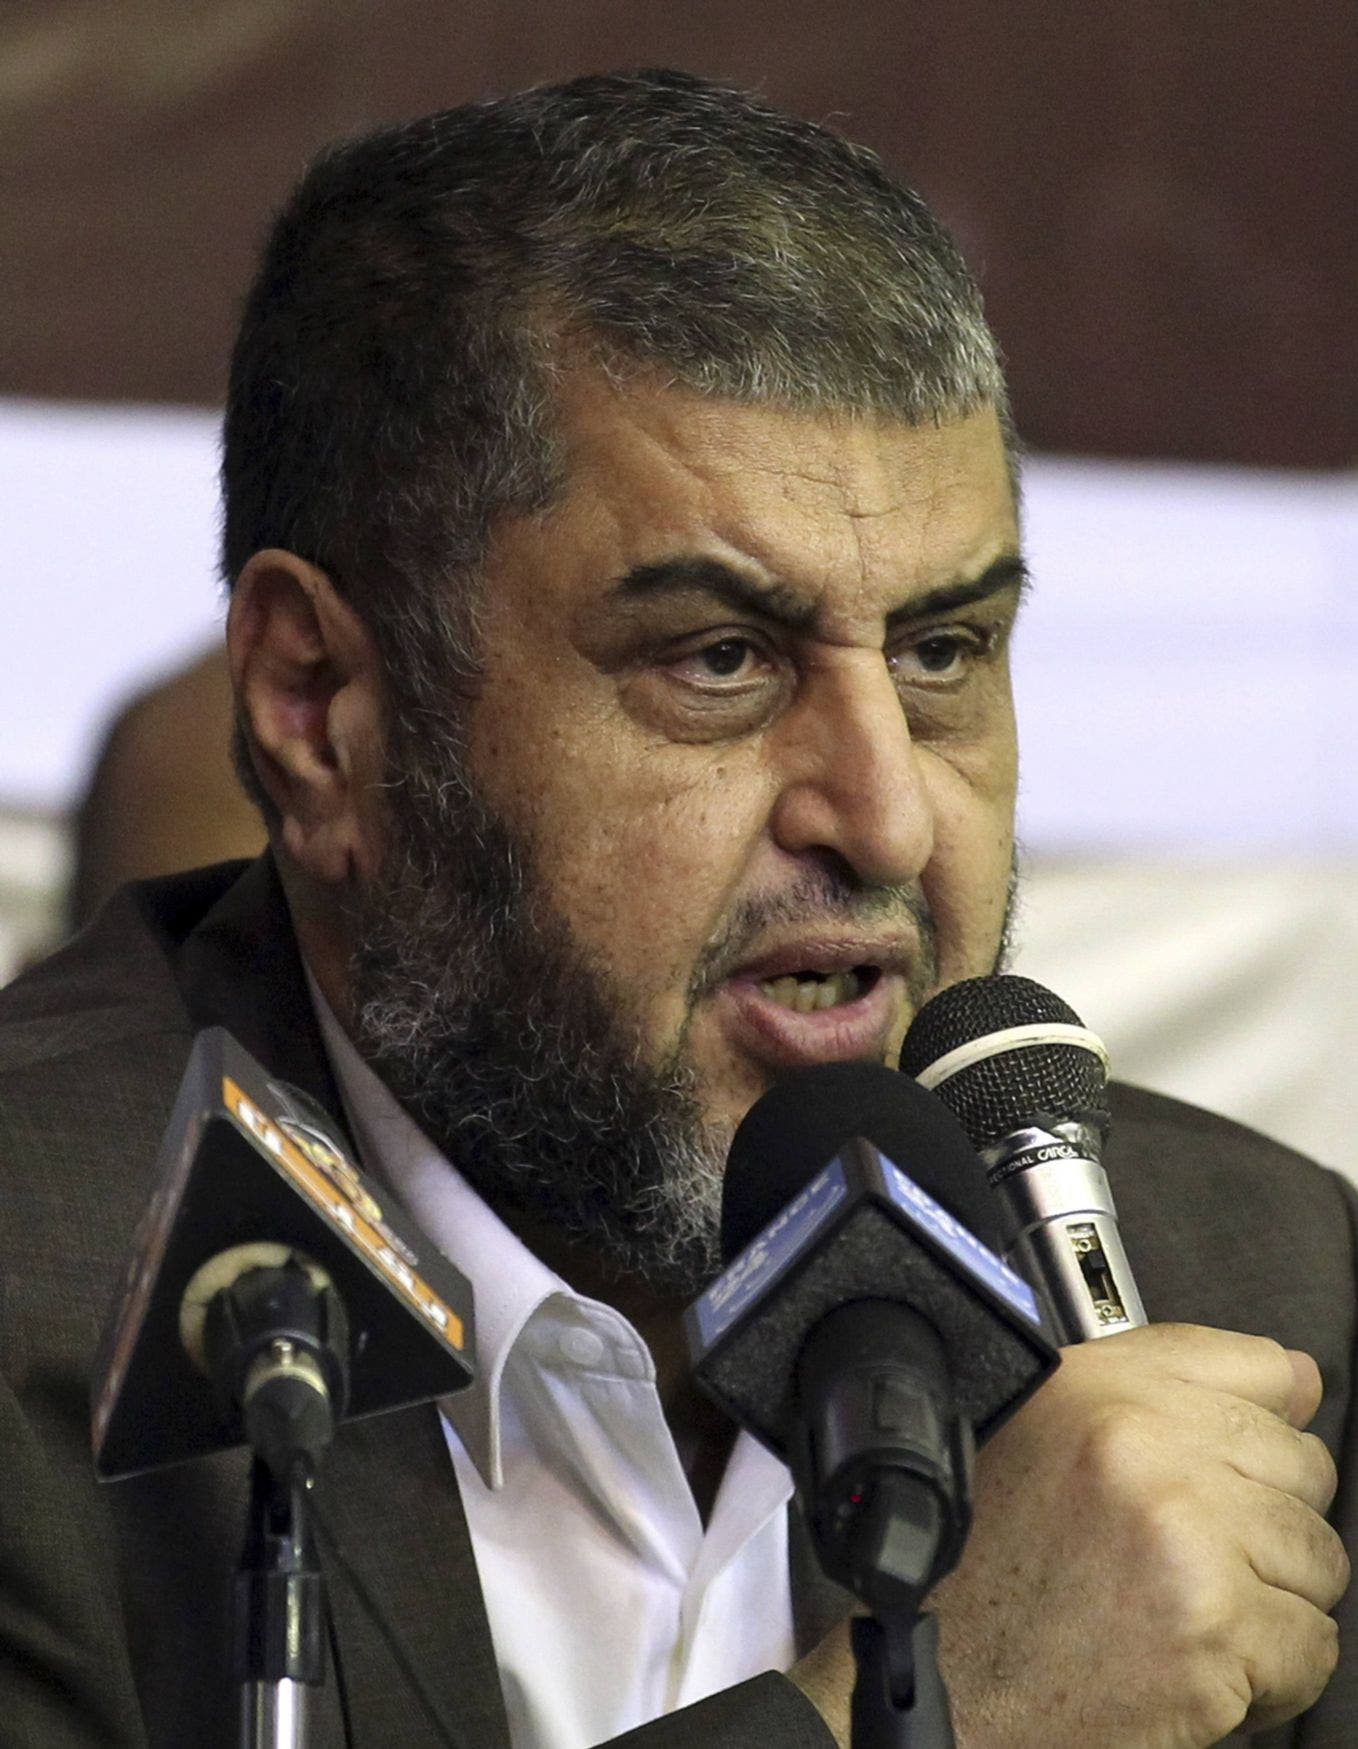 Egypt's Muslim Brotherhood candidate Khairat al-Shater speaking to his supporters during a campaign rally in Cairo. (Reuters)